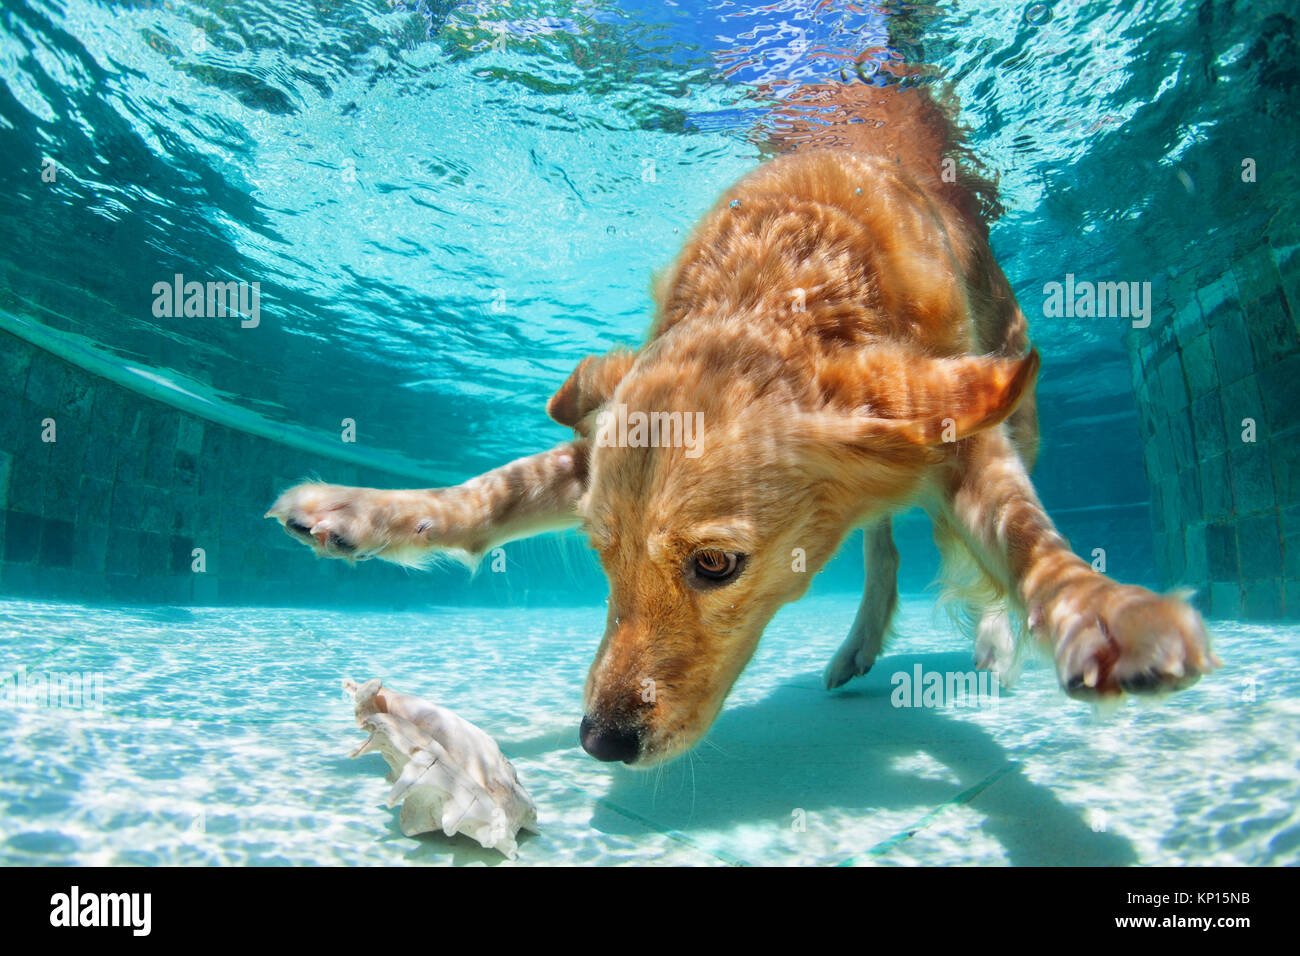 Golden labrador retriever puppy in swimming pool has fun. Dog jump, dive underwater to fetch ball. Dog training - Stock Image